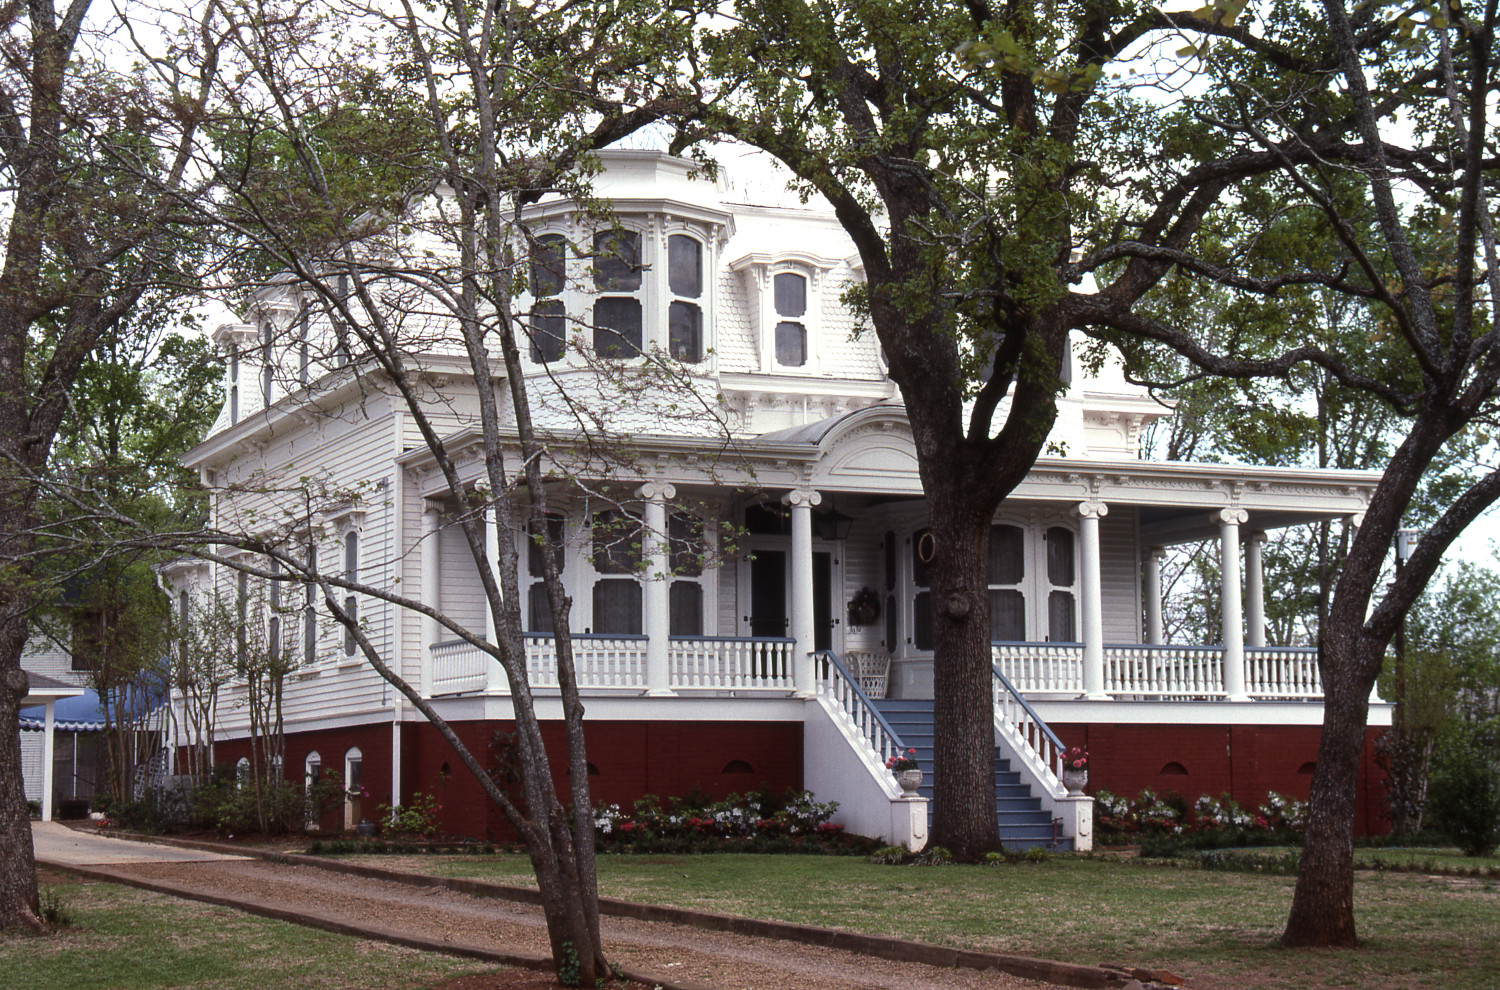 [412 S. Royall], Close-up photograph of the northwest corner of a two-story white house with blue and red accents, located at 416 S. Royall in Palestine, Texas.,